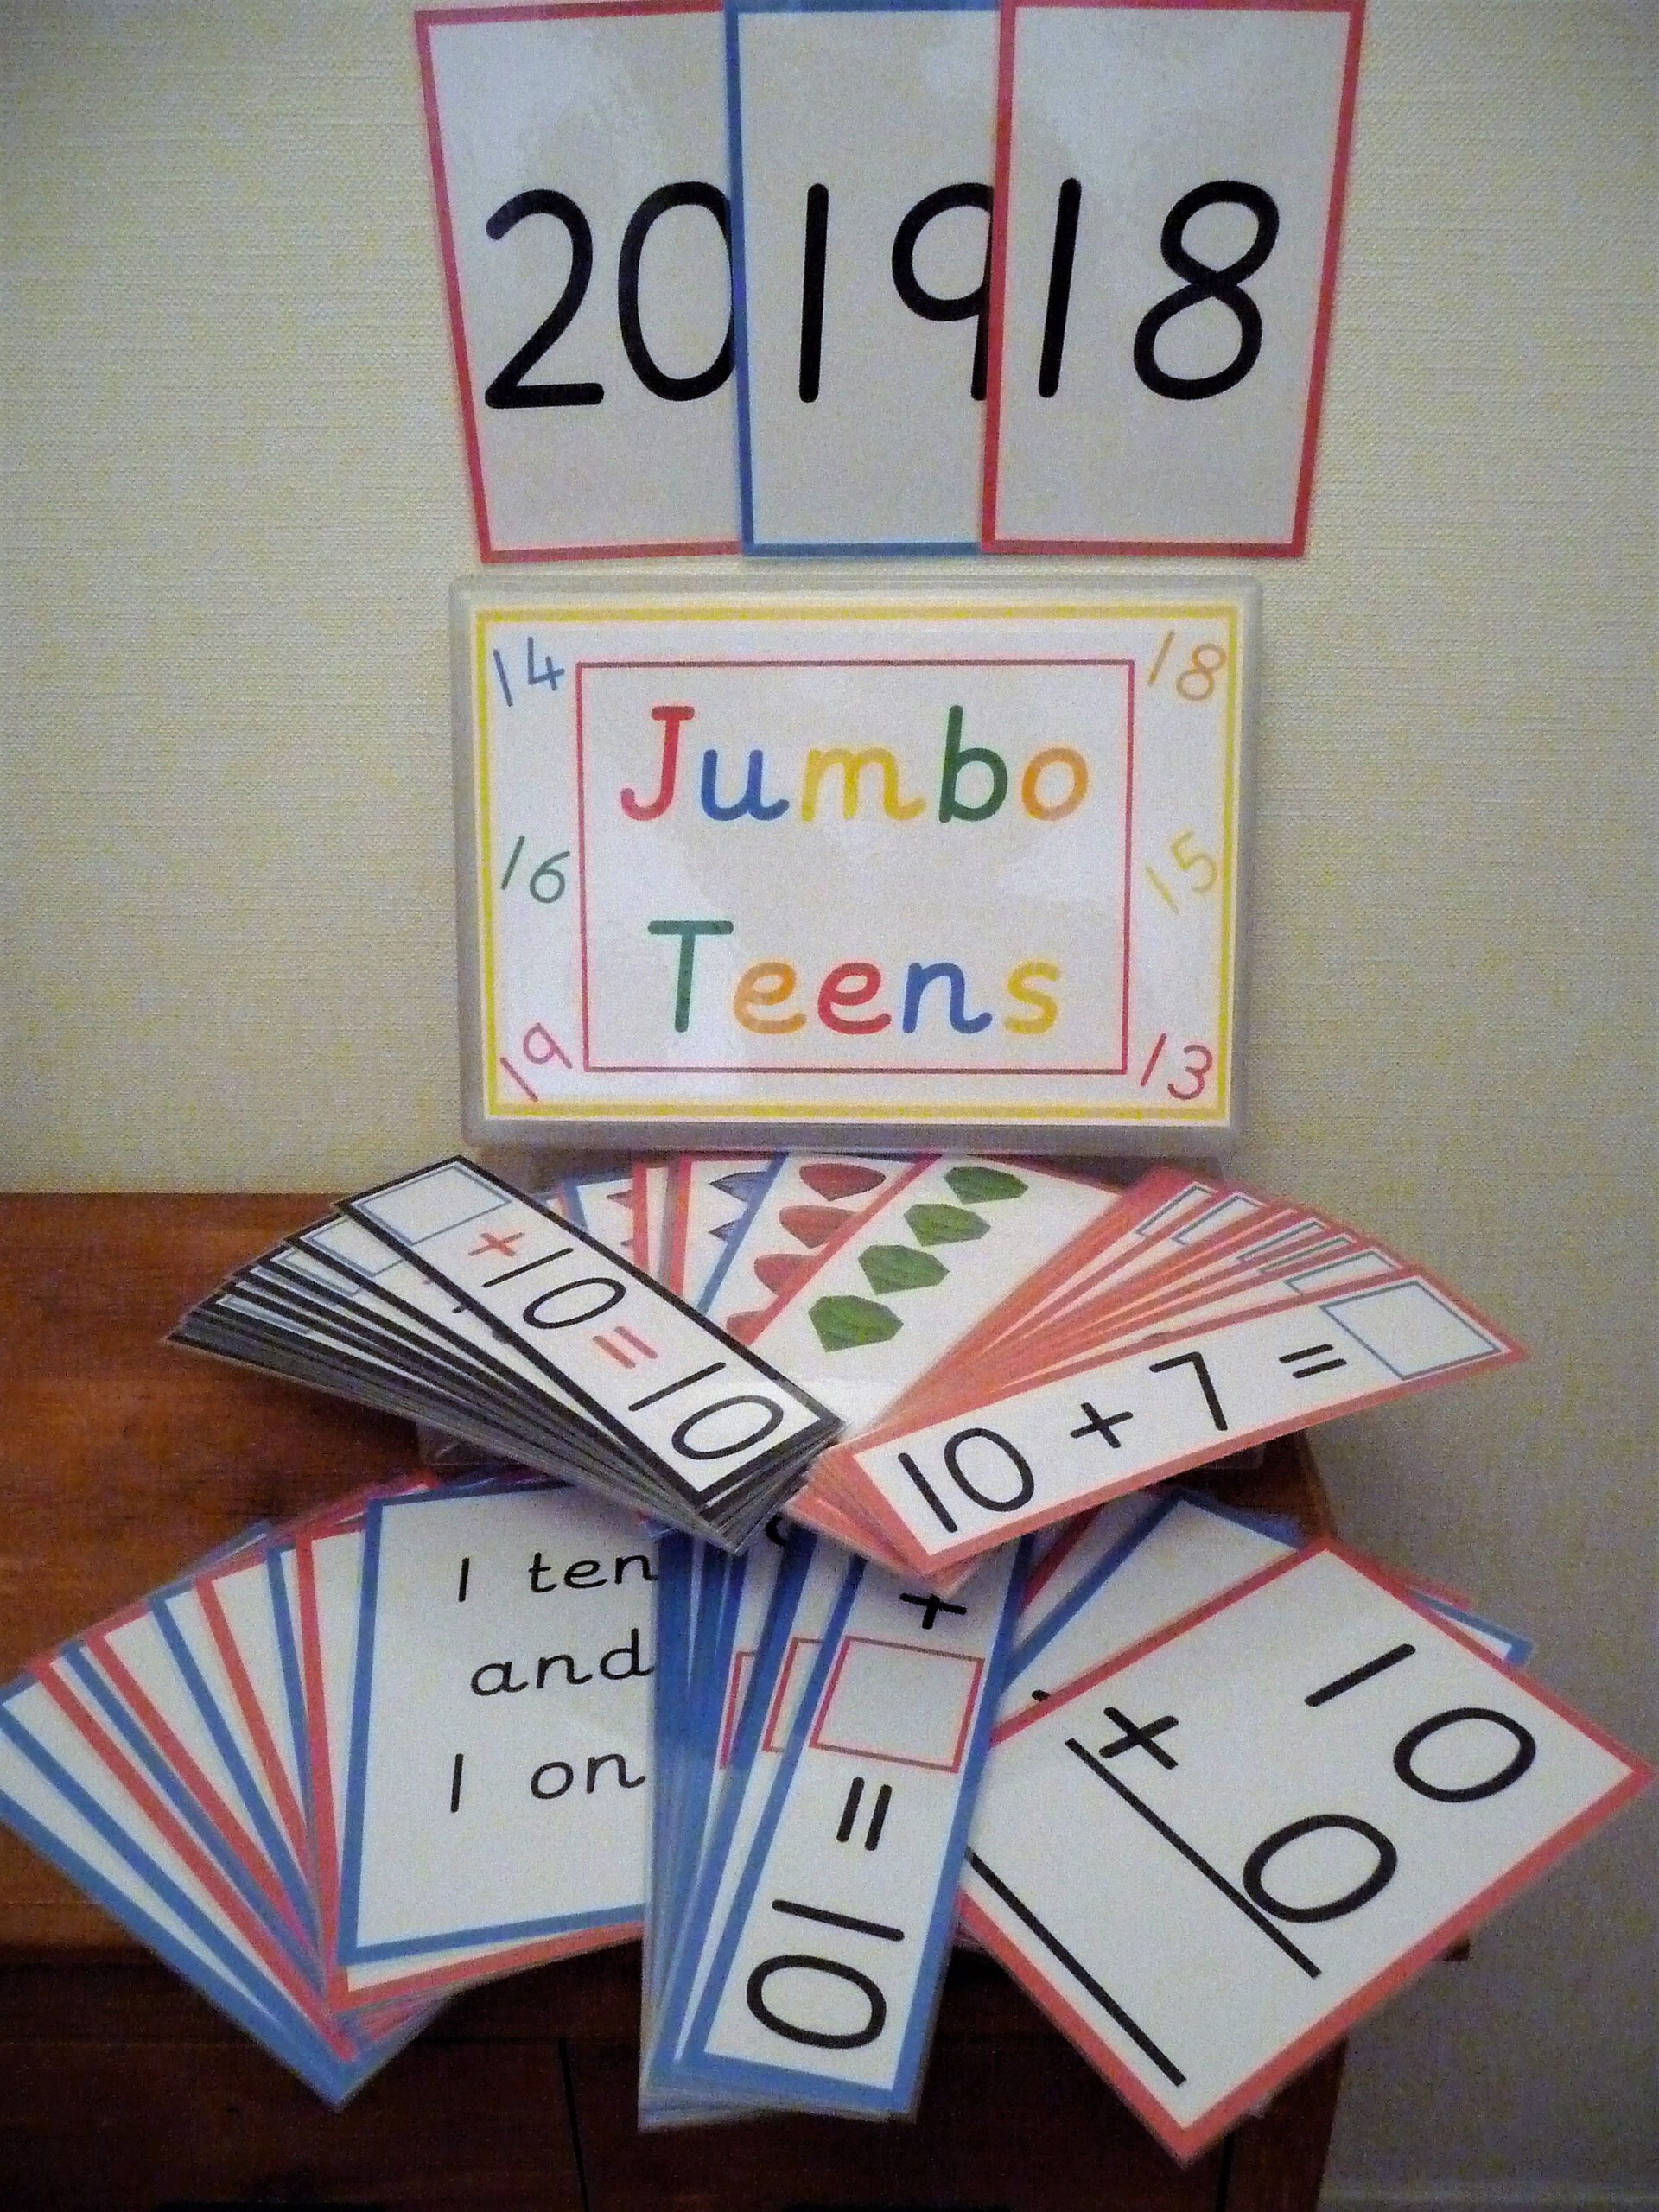 Jumbo Teens Box Consists Of Giant Number Flash Cards 10-20